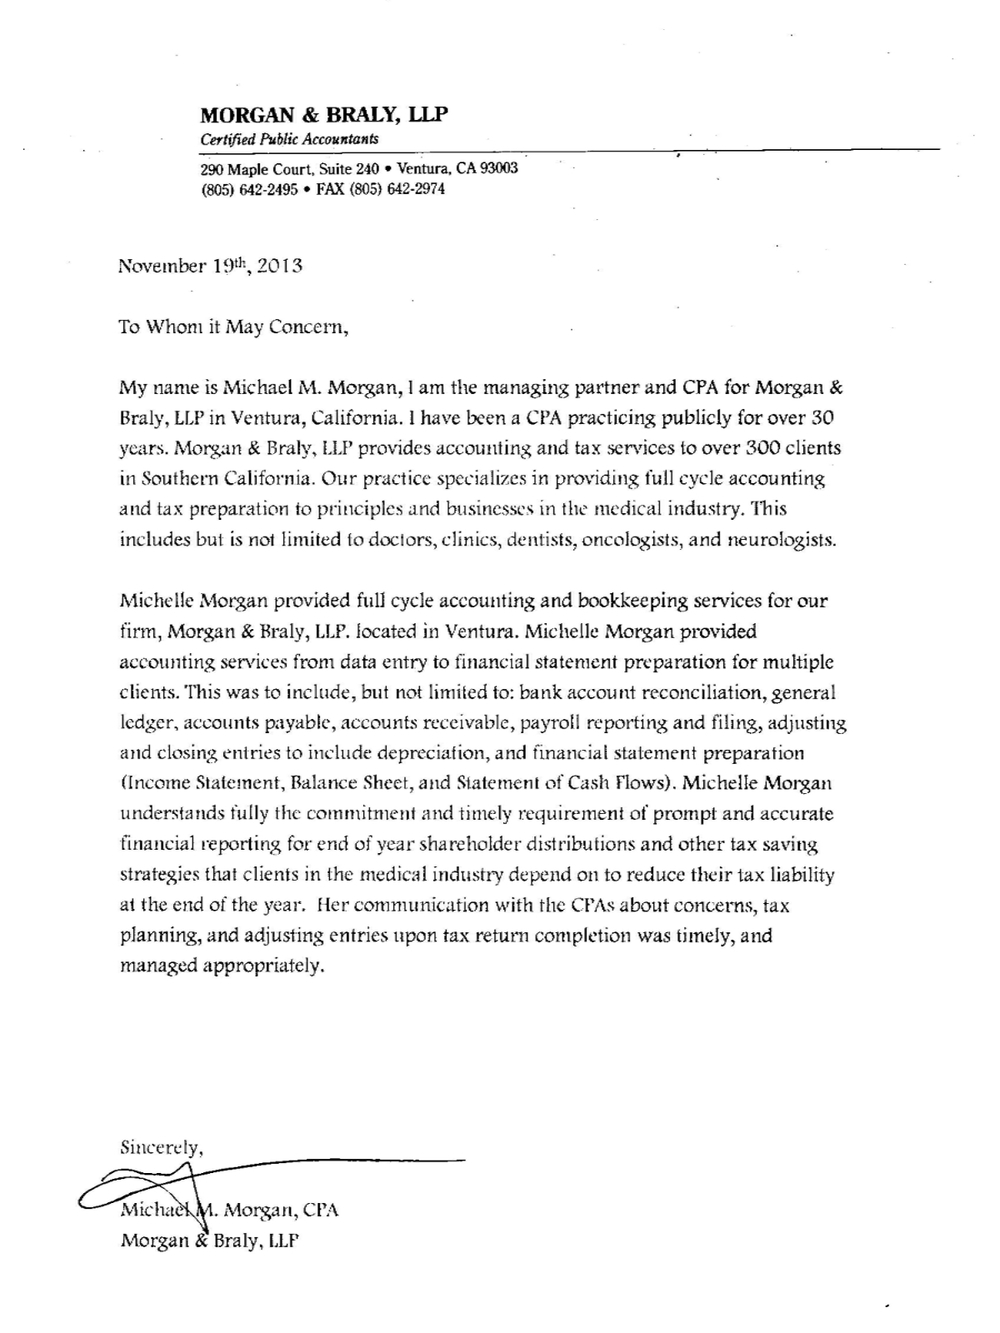 Morgan and Braly CPA LLP Letter of Ref.jpg